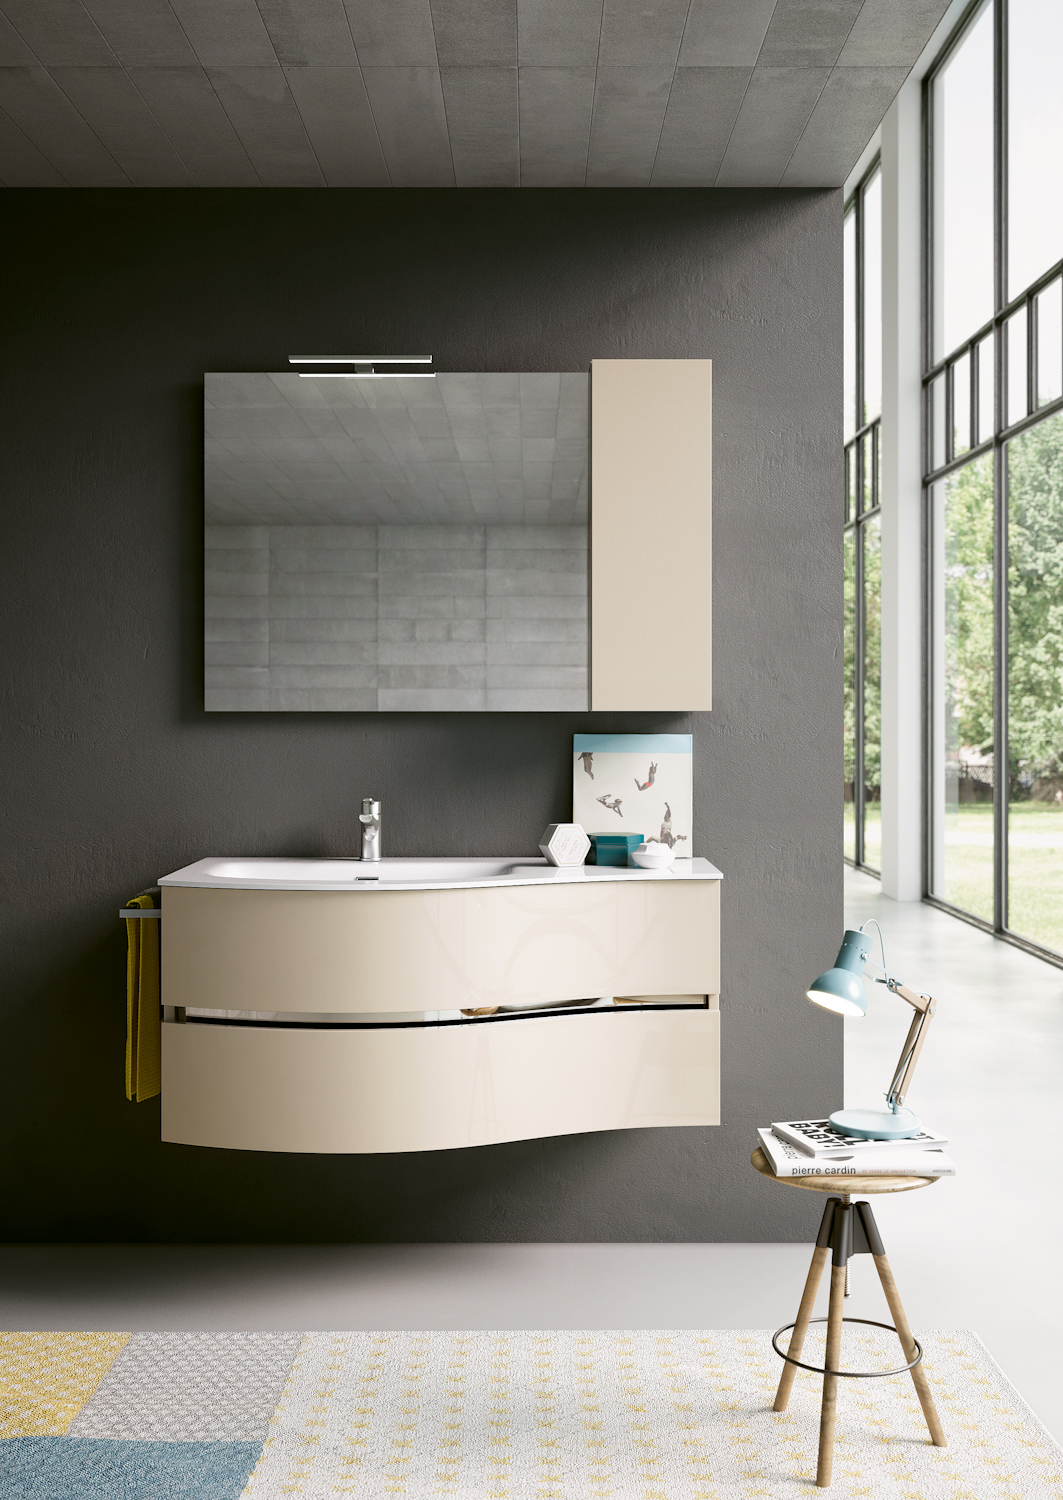 Moon bmt arredo bagno - Mobile bagno fly ...